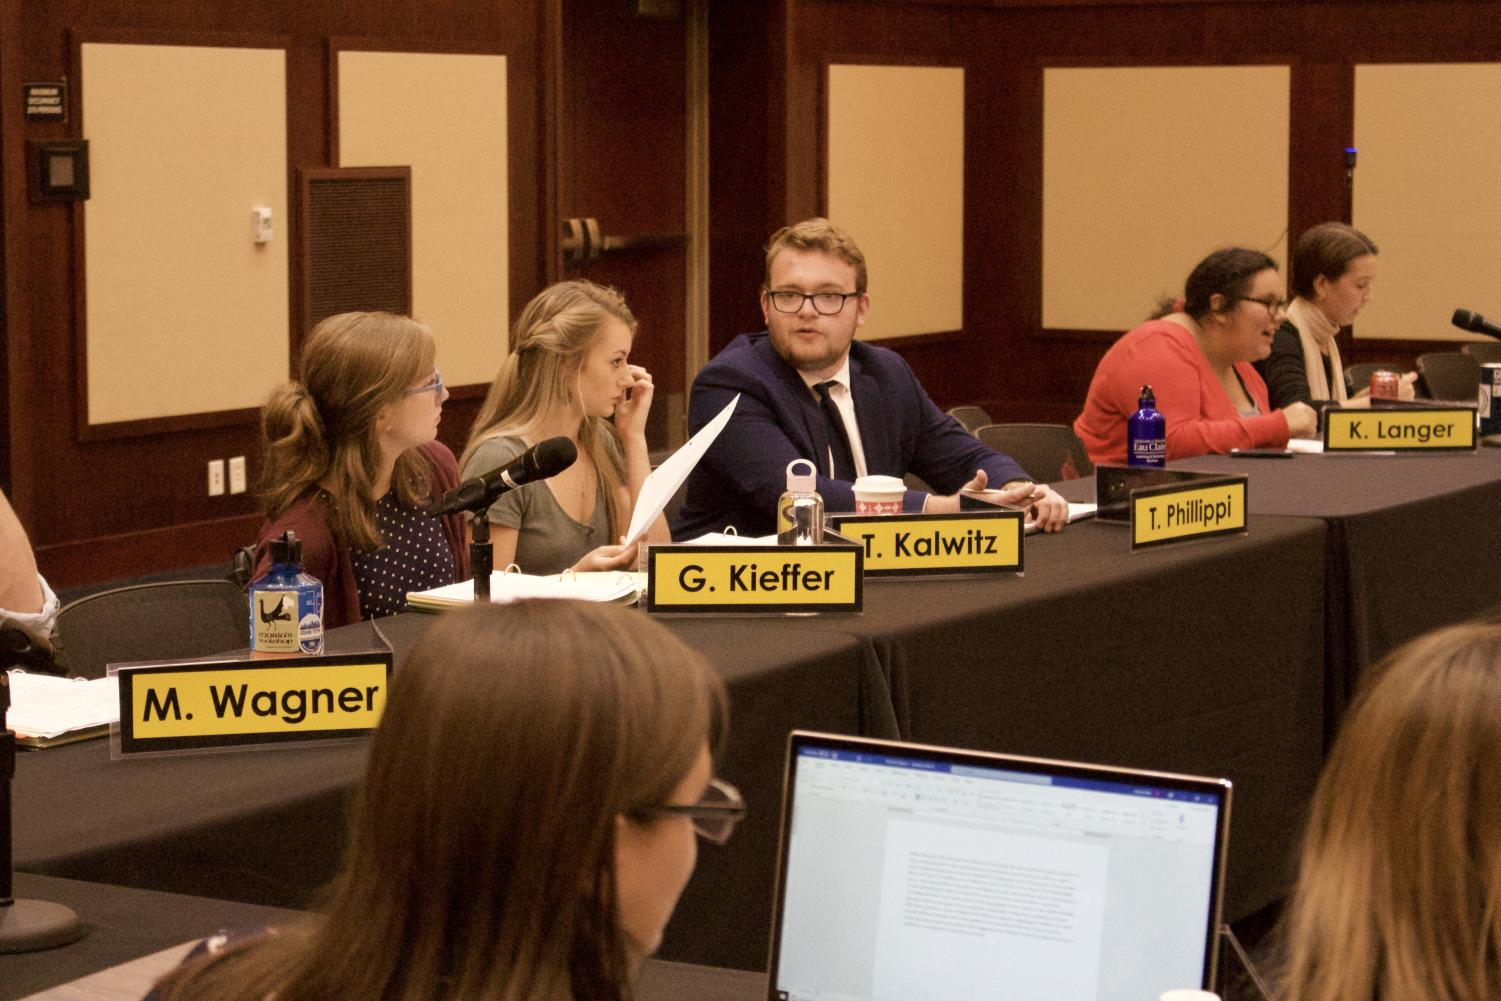 Student Senate passed three resolutions on Monday night: a resolution to support Indigenous People's Day, a resolution to support National Coming Out Day and a resolution to support October as National Disability Employment Awareness month.